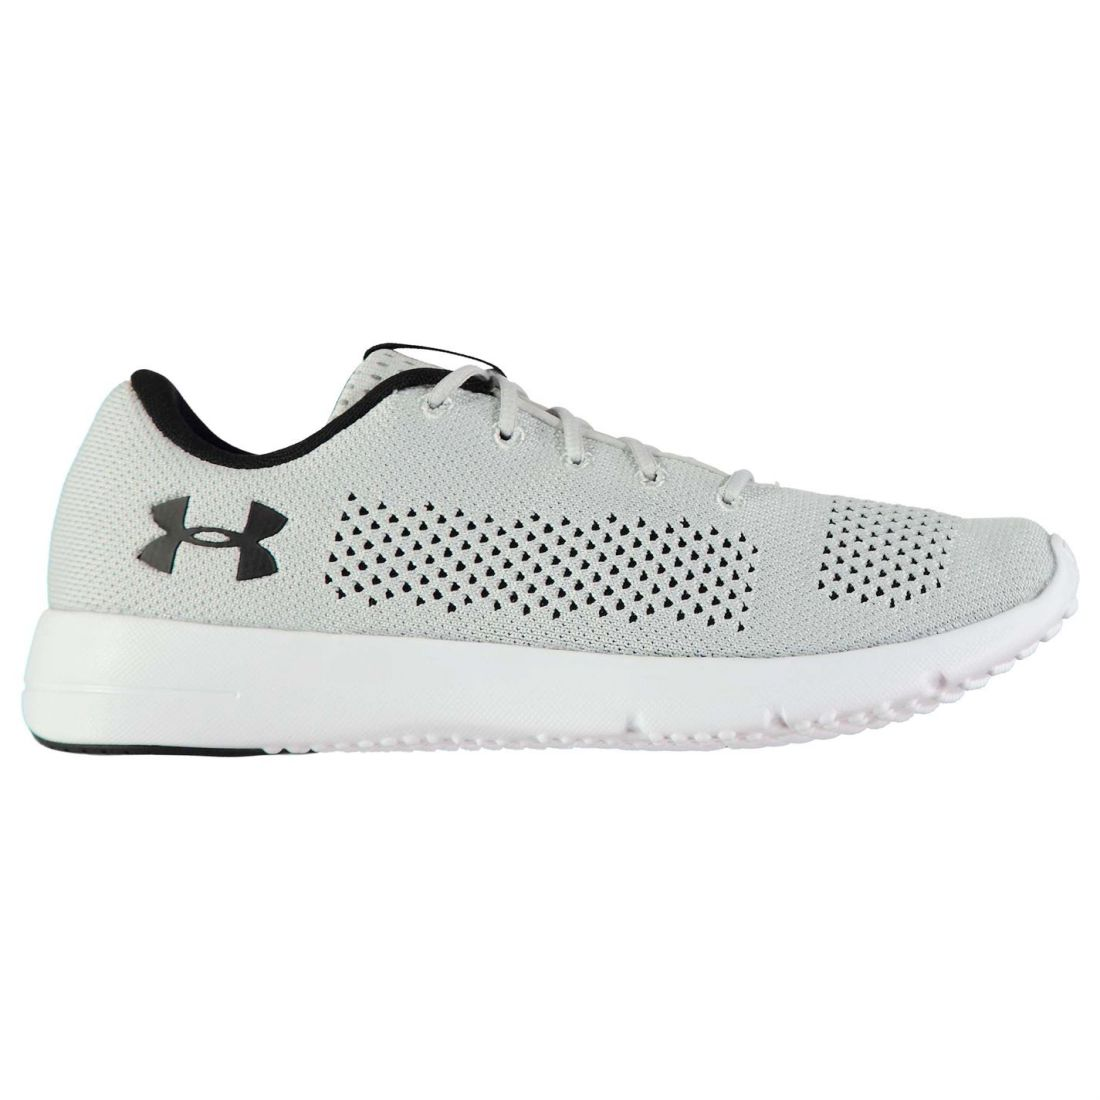 ee43d397dd0d91 Under Armour Rapid Running Shoes Mens Gents Runners Ventilated Lightweight  Knit